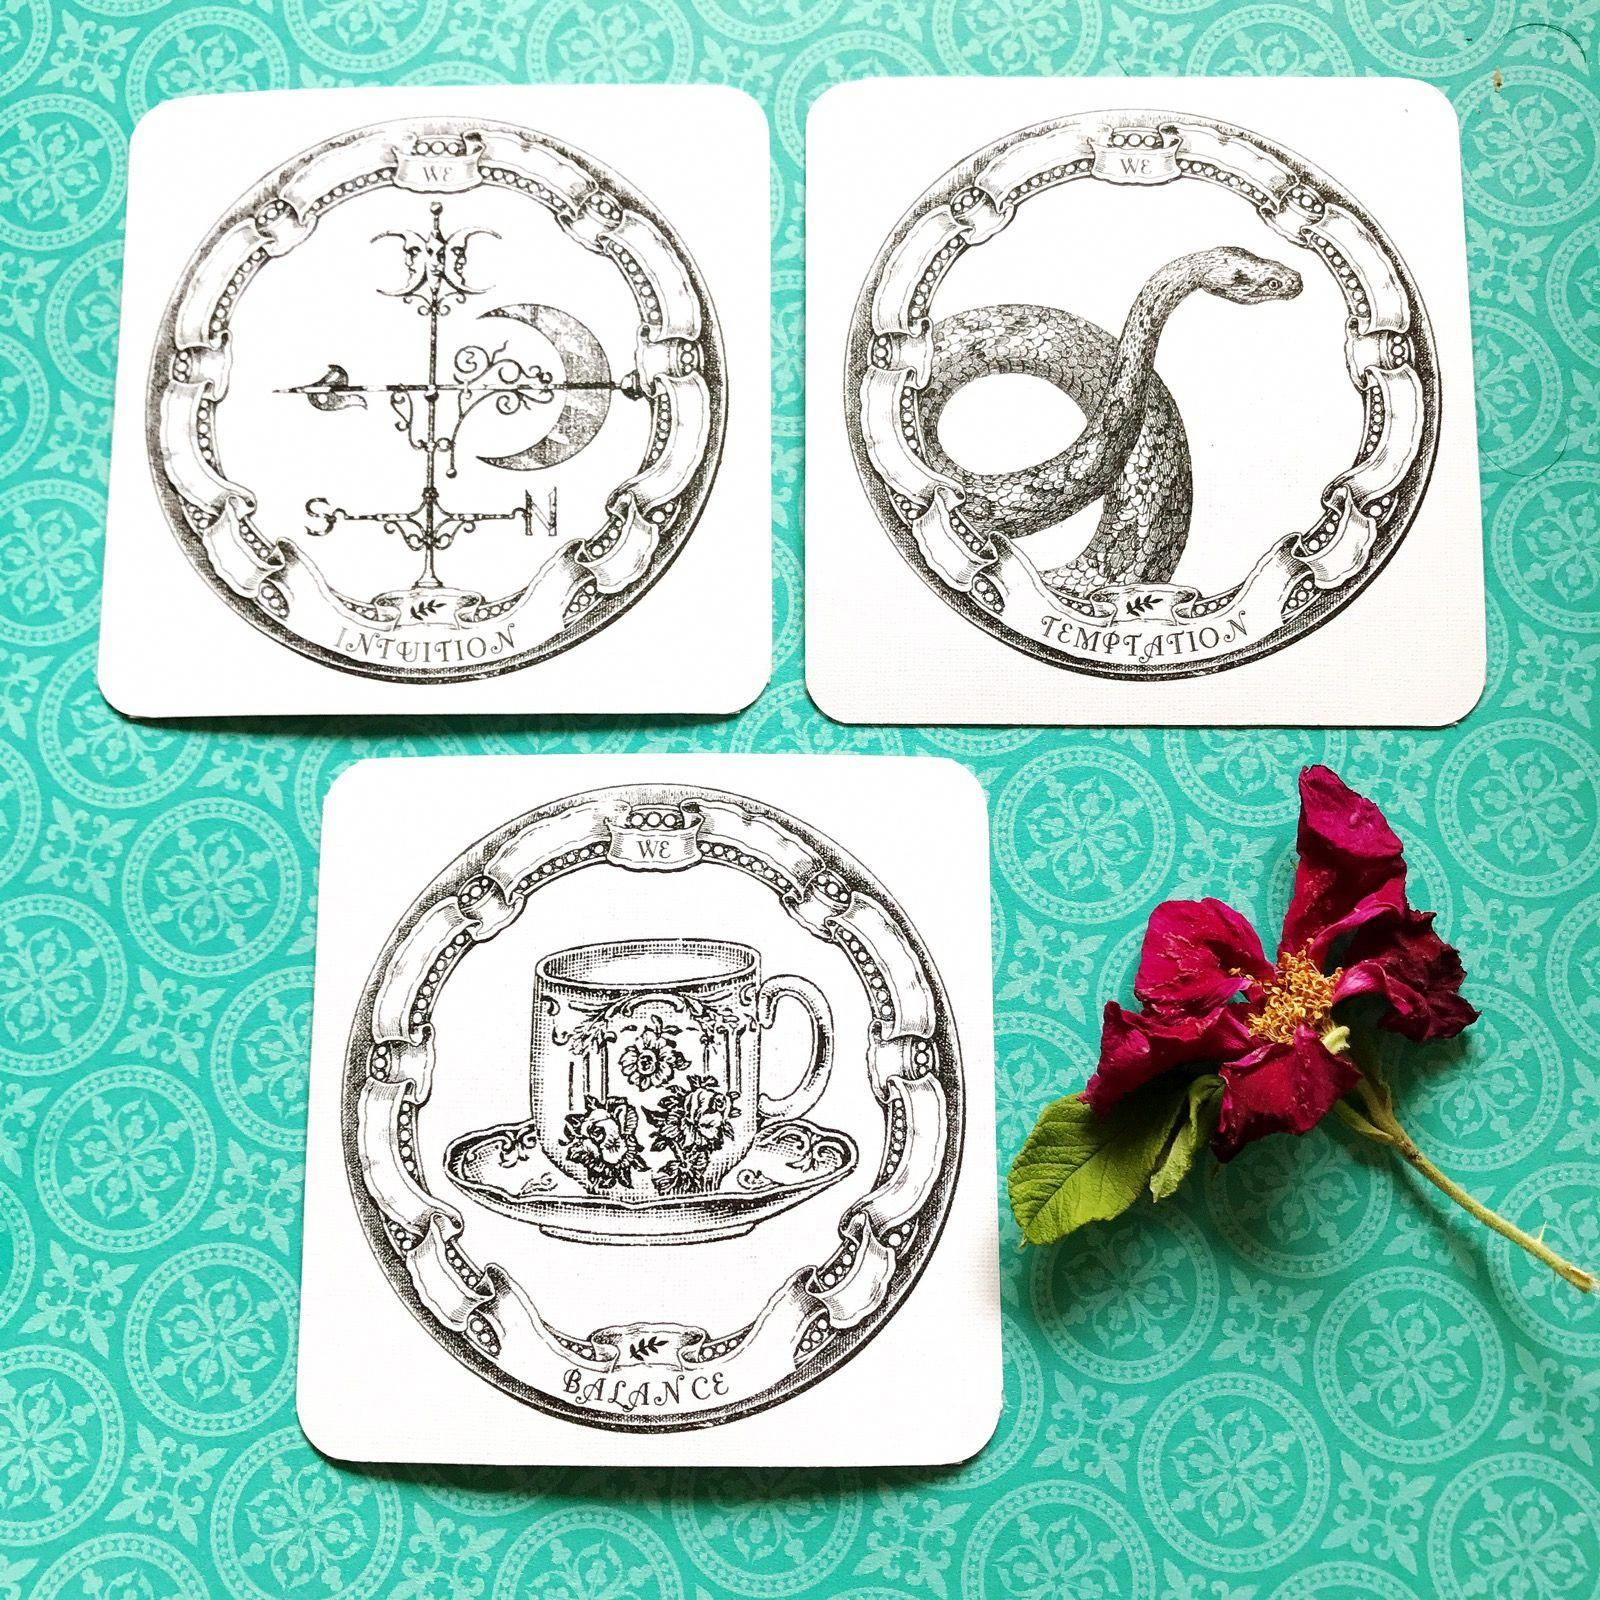 How to get more out of your 3card oracle readings